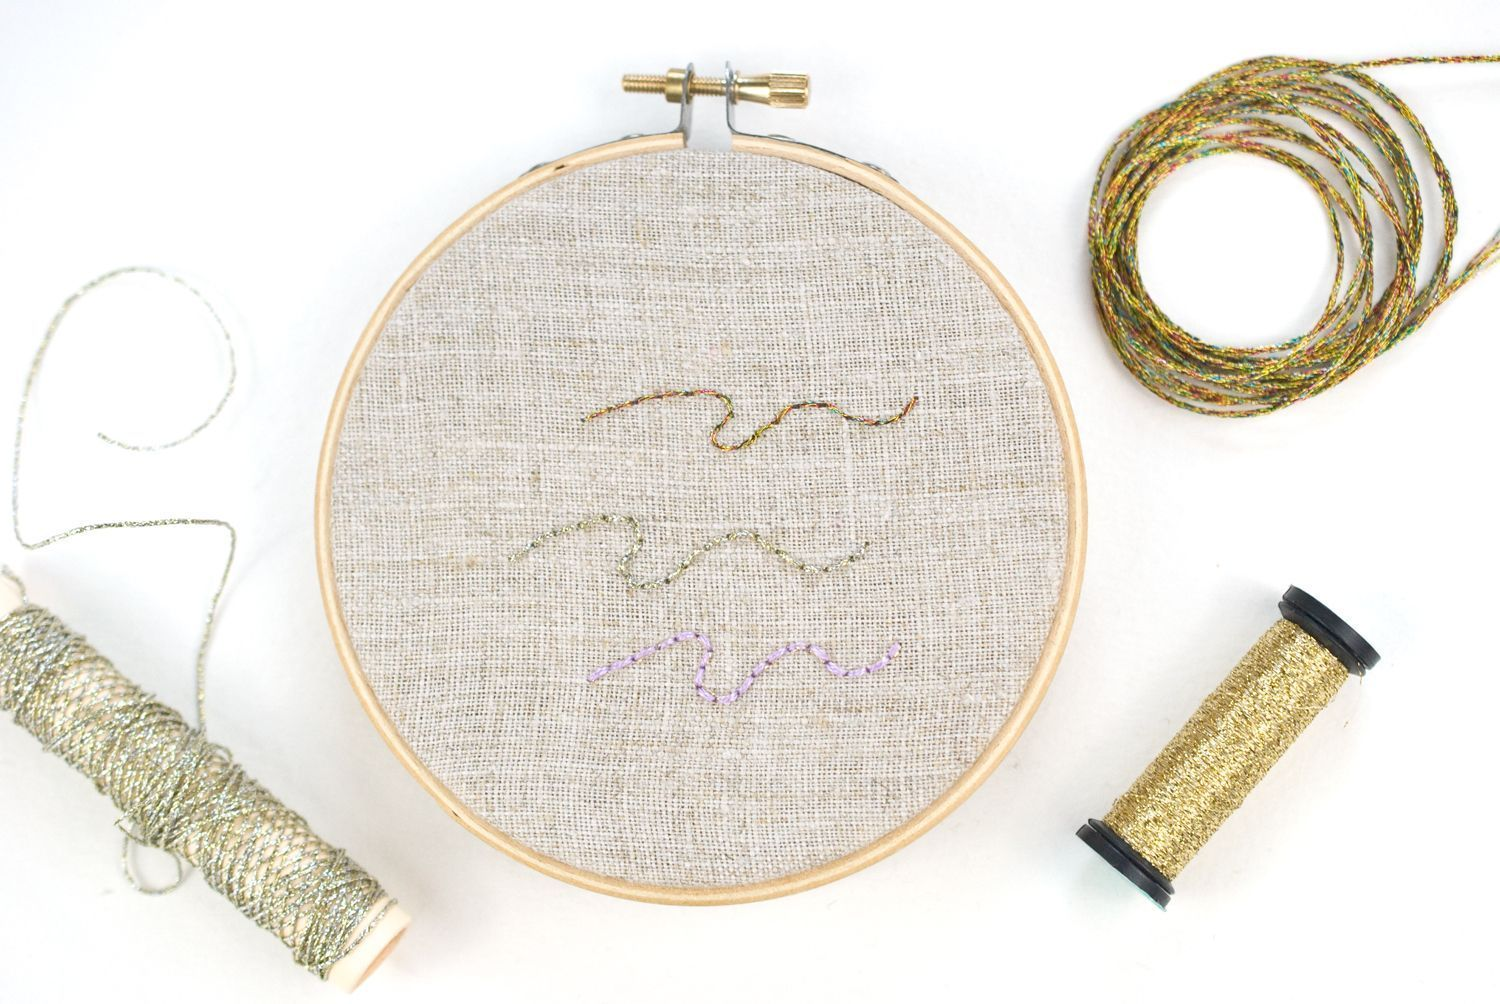 Metallic threads: embroidery how-to